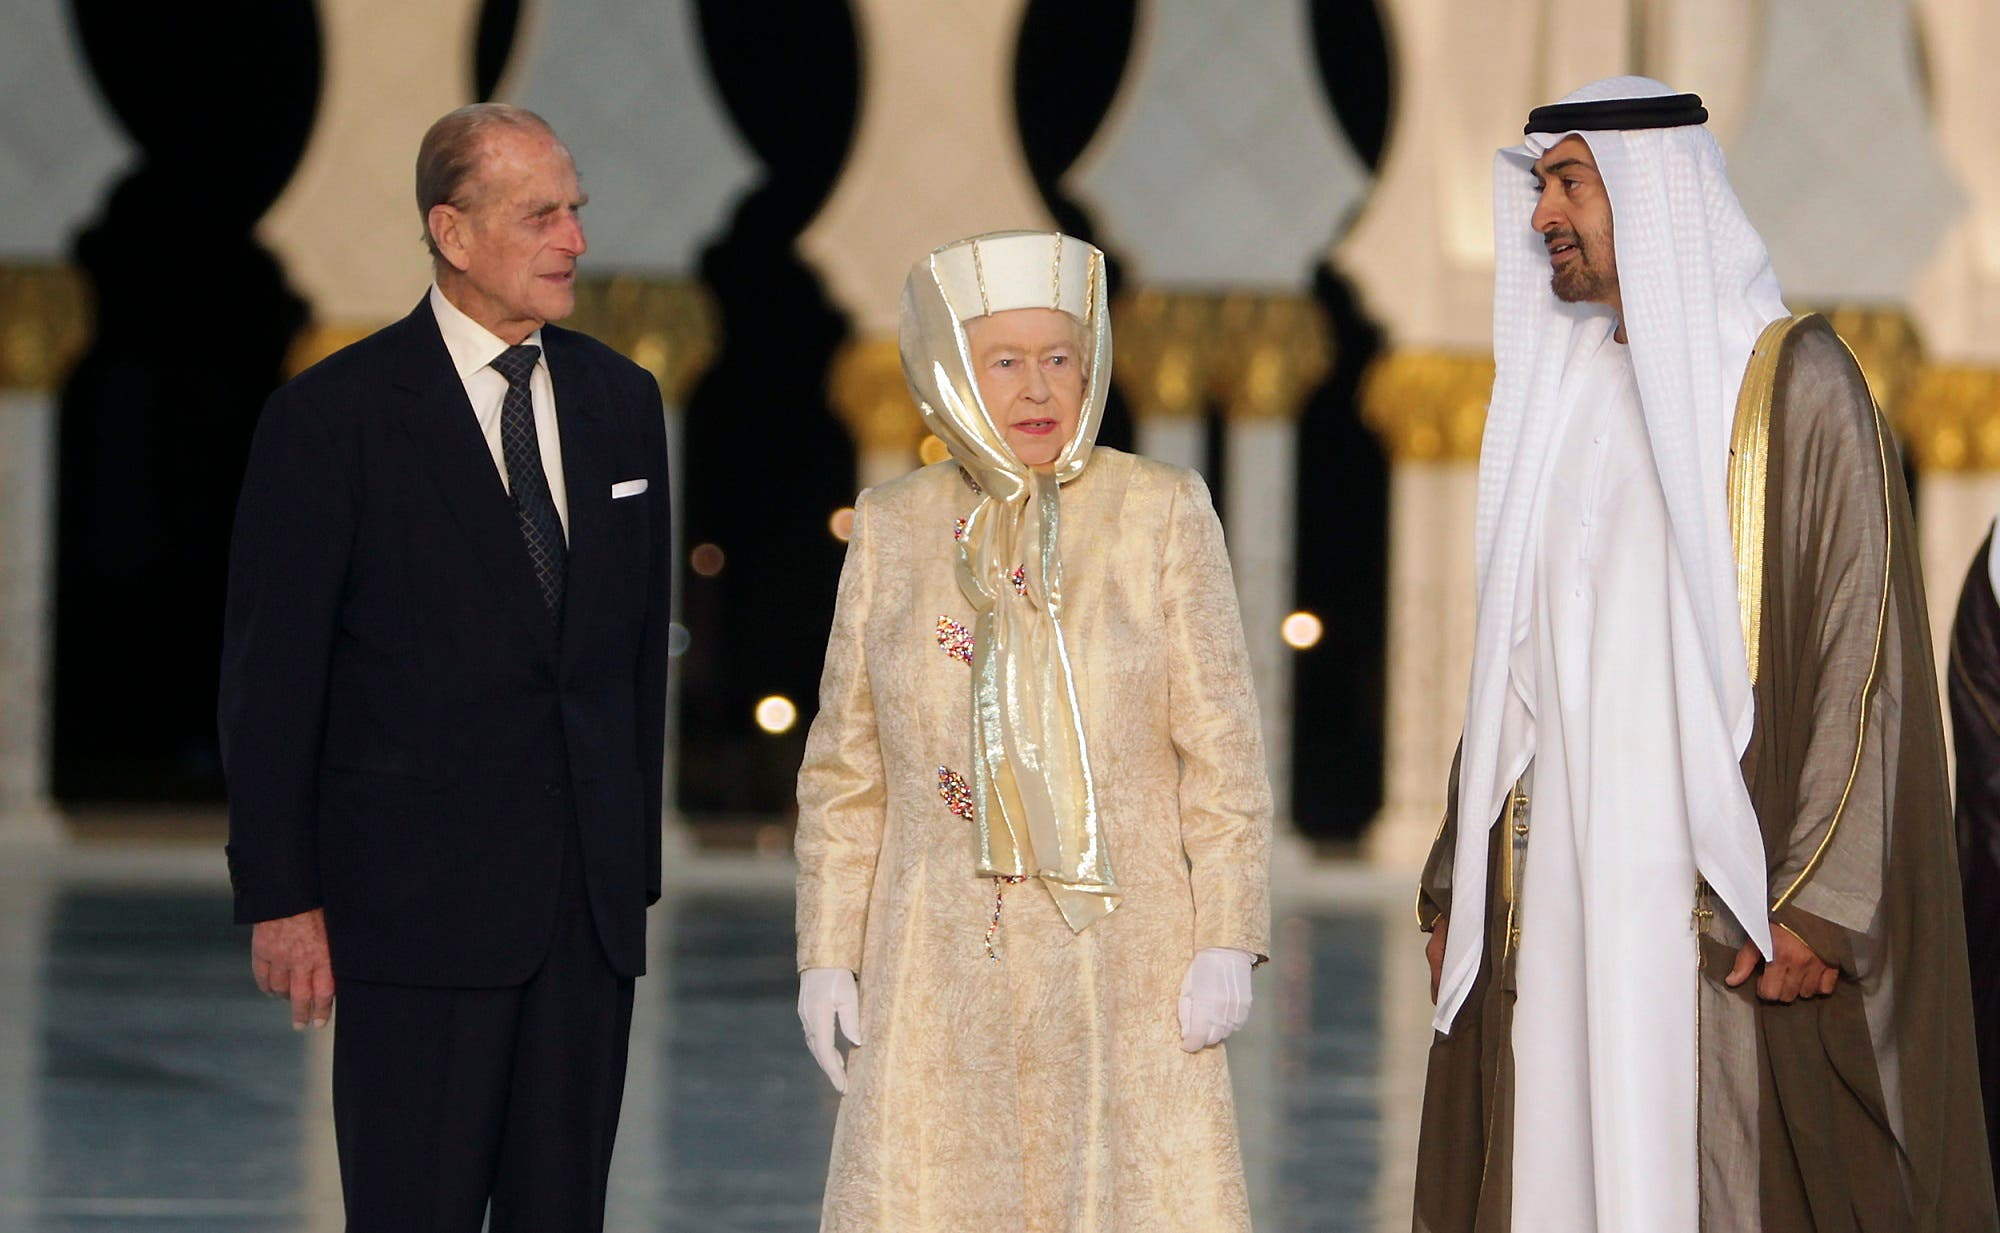 Britain's Queen Elizabeth and her husband Prince Philip stand next to Abu Dhabi's Crown Prince Sheikh Mohammed bin Zayed during their visit at the Sheikh Zayed Grand Mosque in Abu Dhabi November 24, 2010. (Reuters)